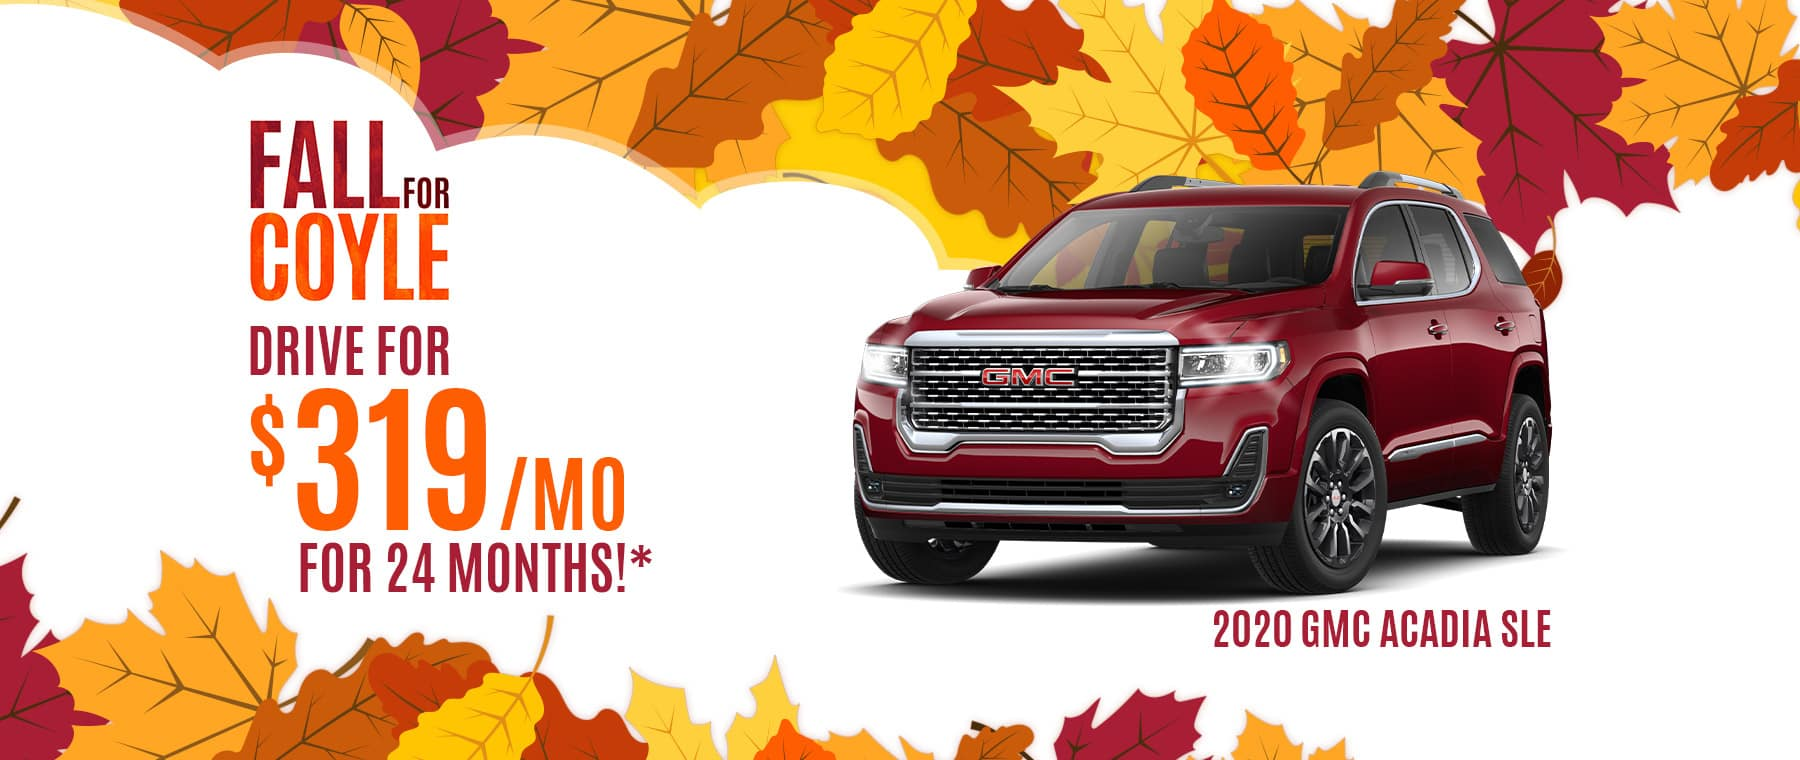 Lease a New GMC Acadia near Jeffersonvillle, Indiana